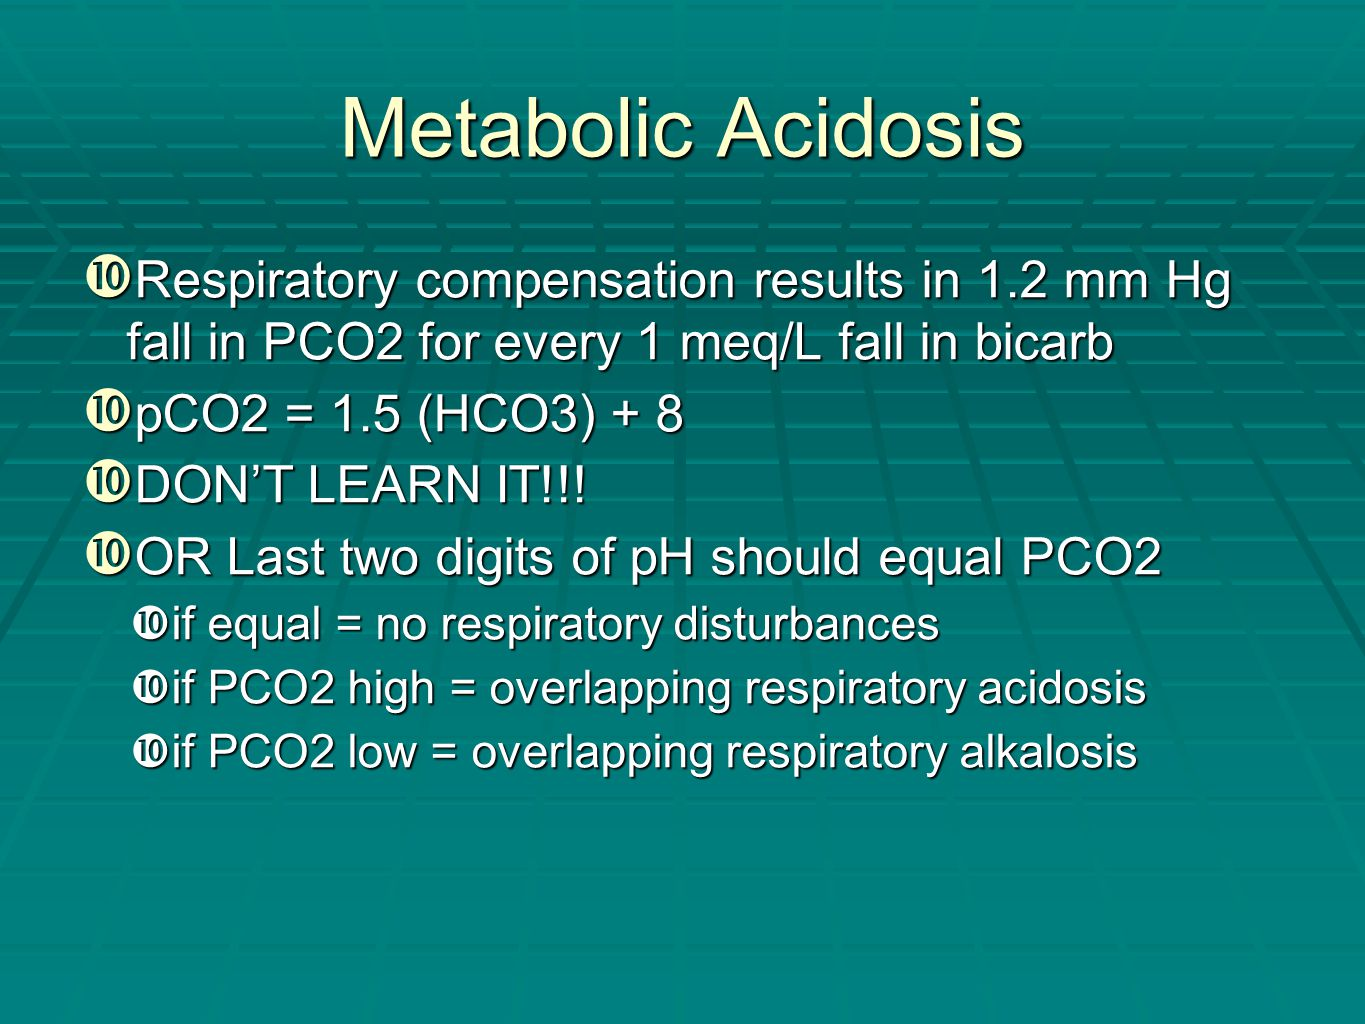 Metabolic Acidosis  Respiratory compensation results in 1.2 mm Hg fall in PCO2 for every 1 meq/L fall in bicarb  pCO2 = 1.5 (HCO3) + 8  DON'T LEARN